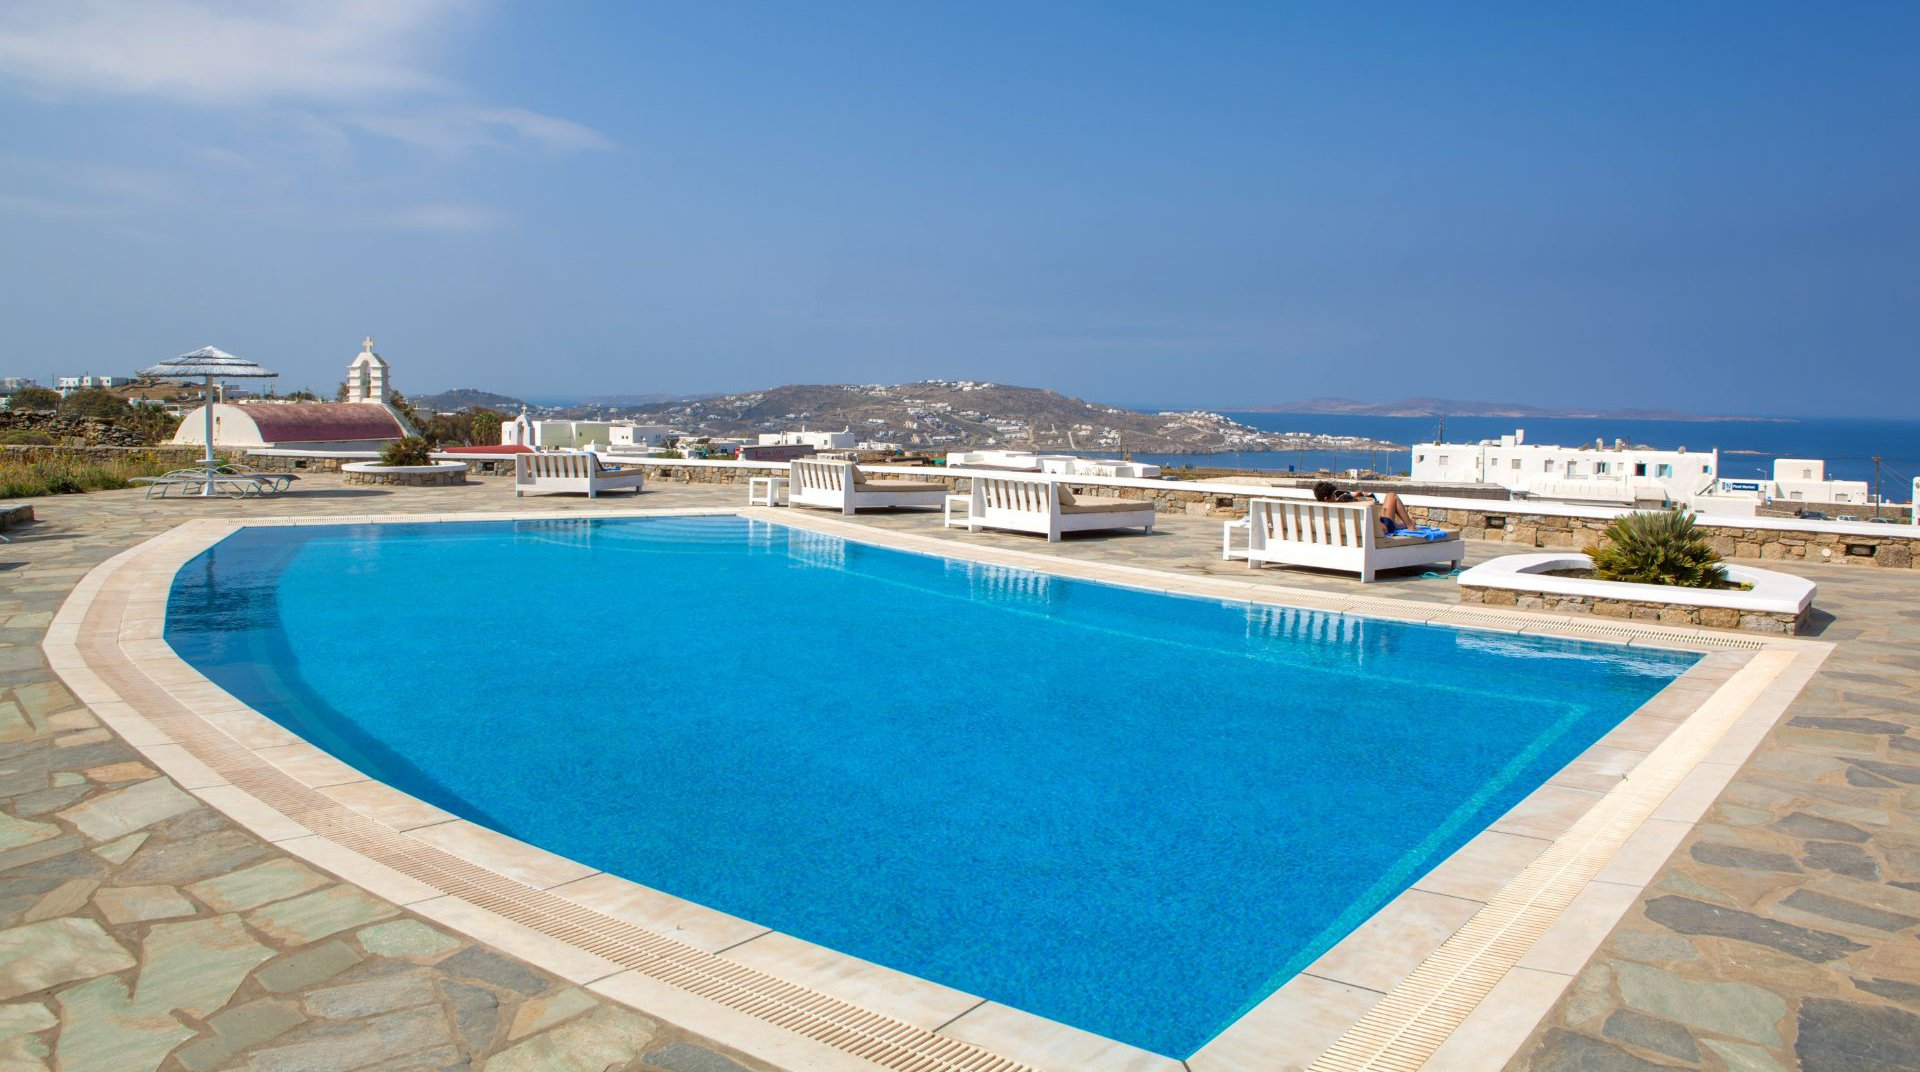 Our pool in sunset wing with overlooking Mykonos island